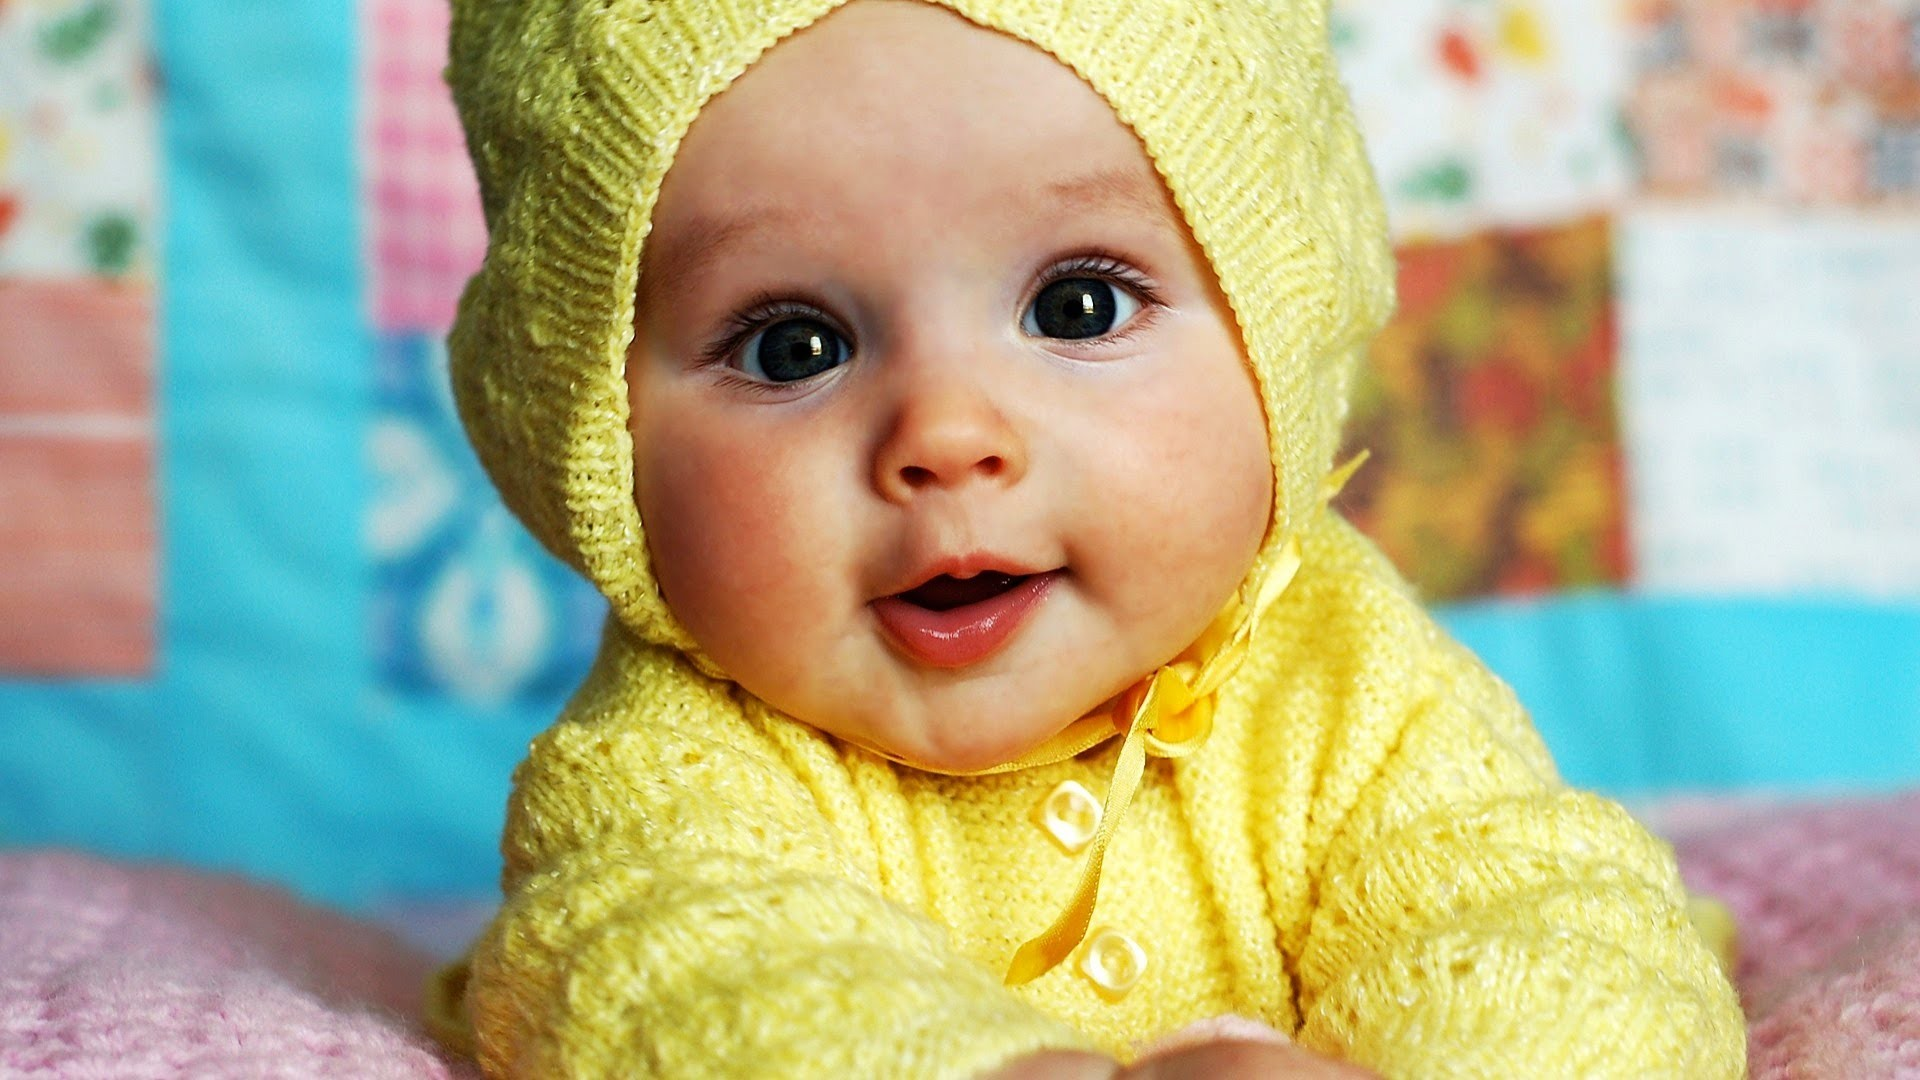 Cute Baby Boy Wallpapers 66 Images